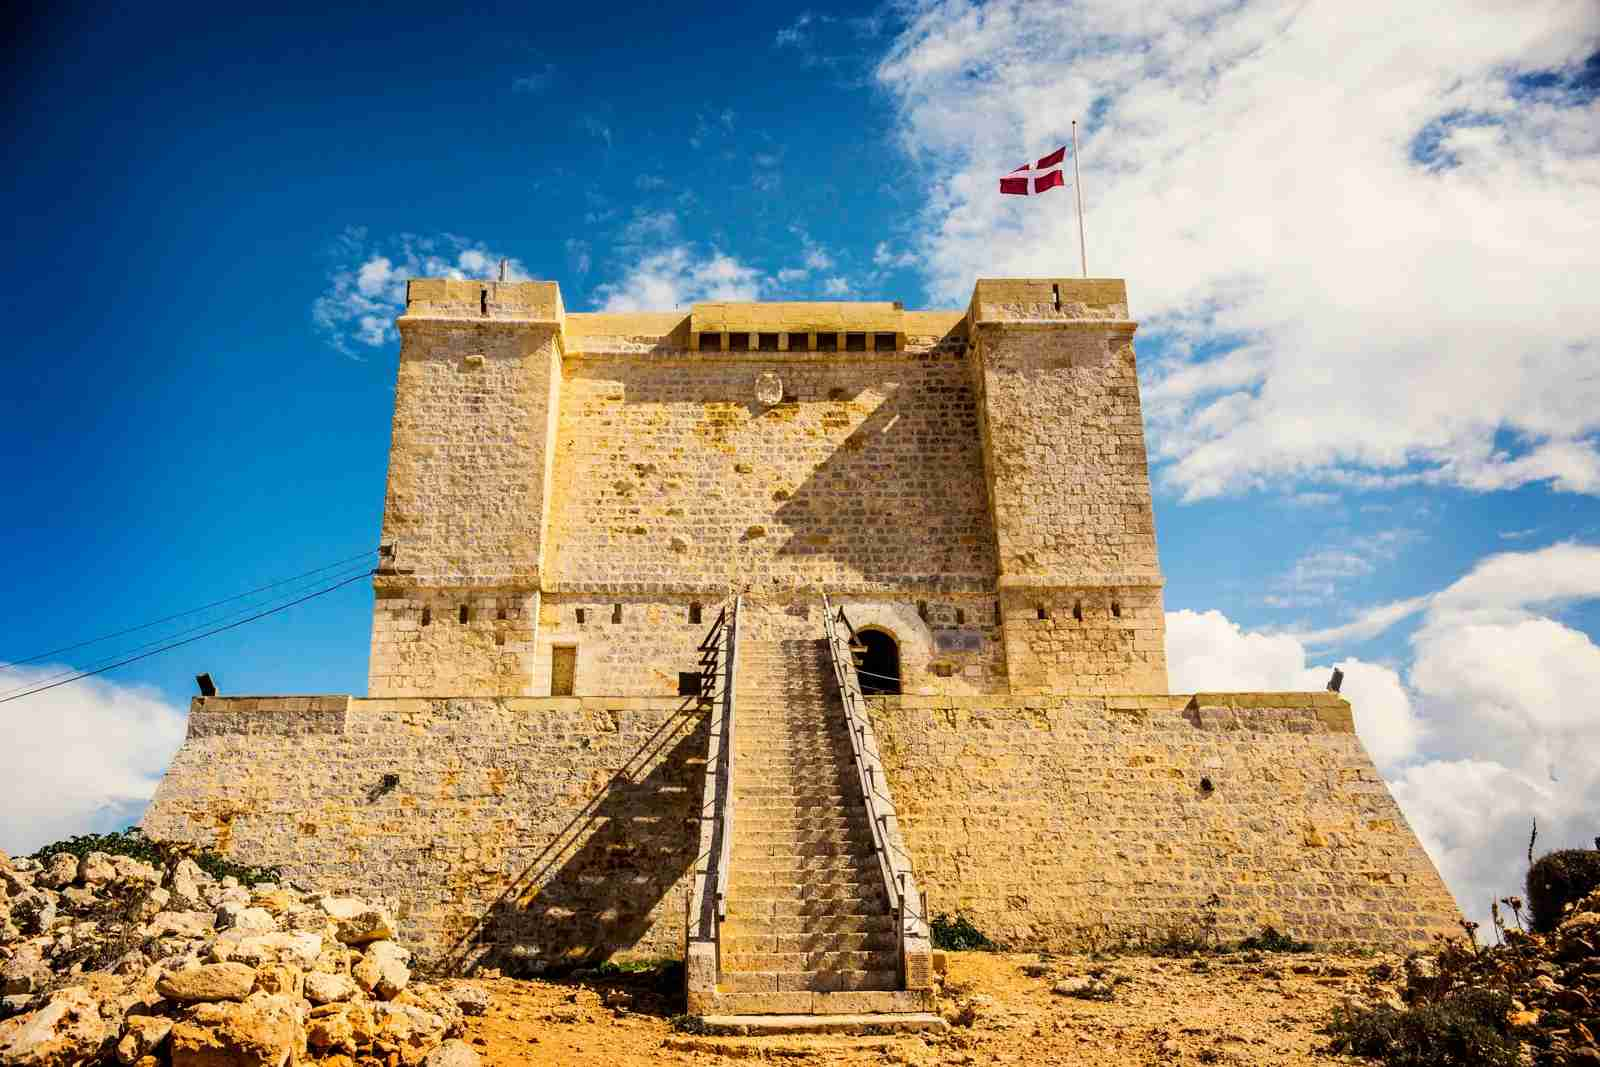 Santa Marija Tower, Comino, Malta. (Photo by Sun_Shine / Shutterstock)